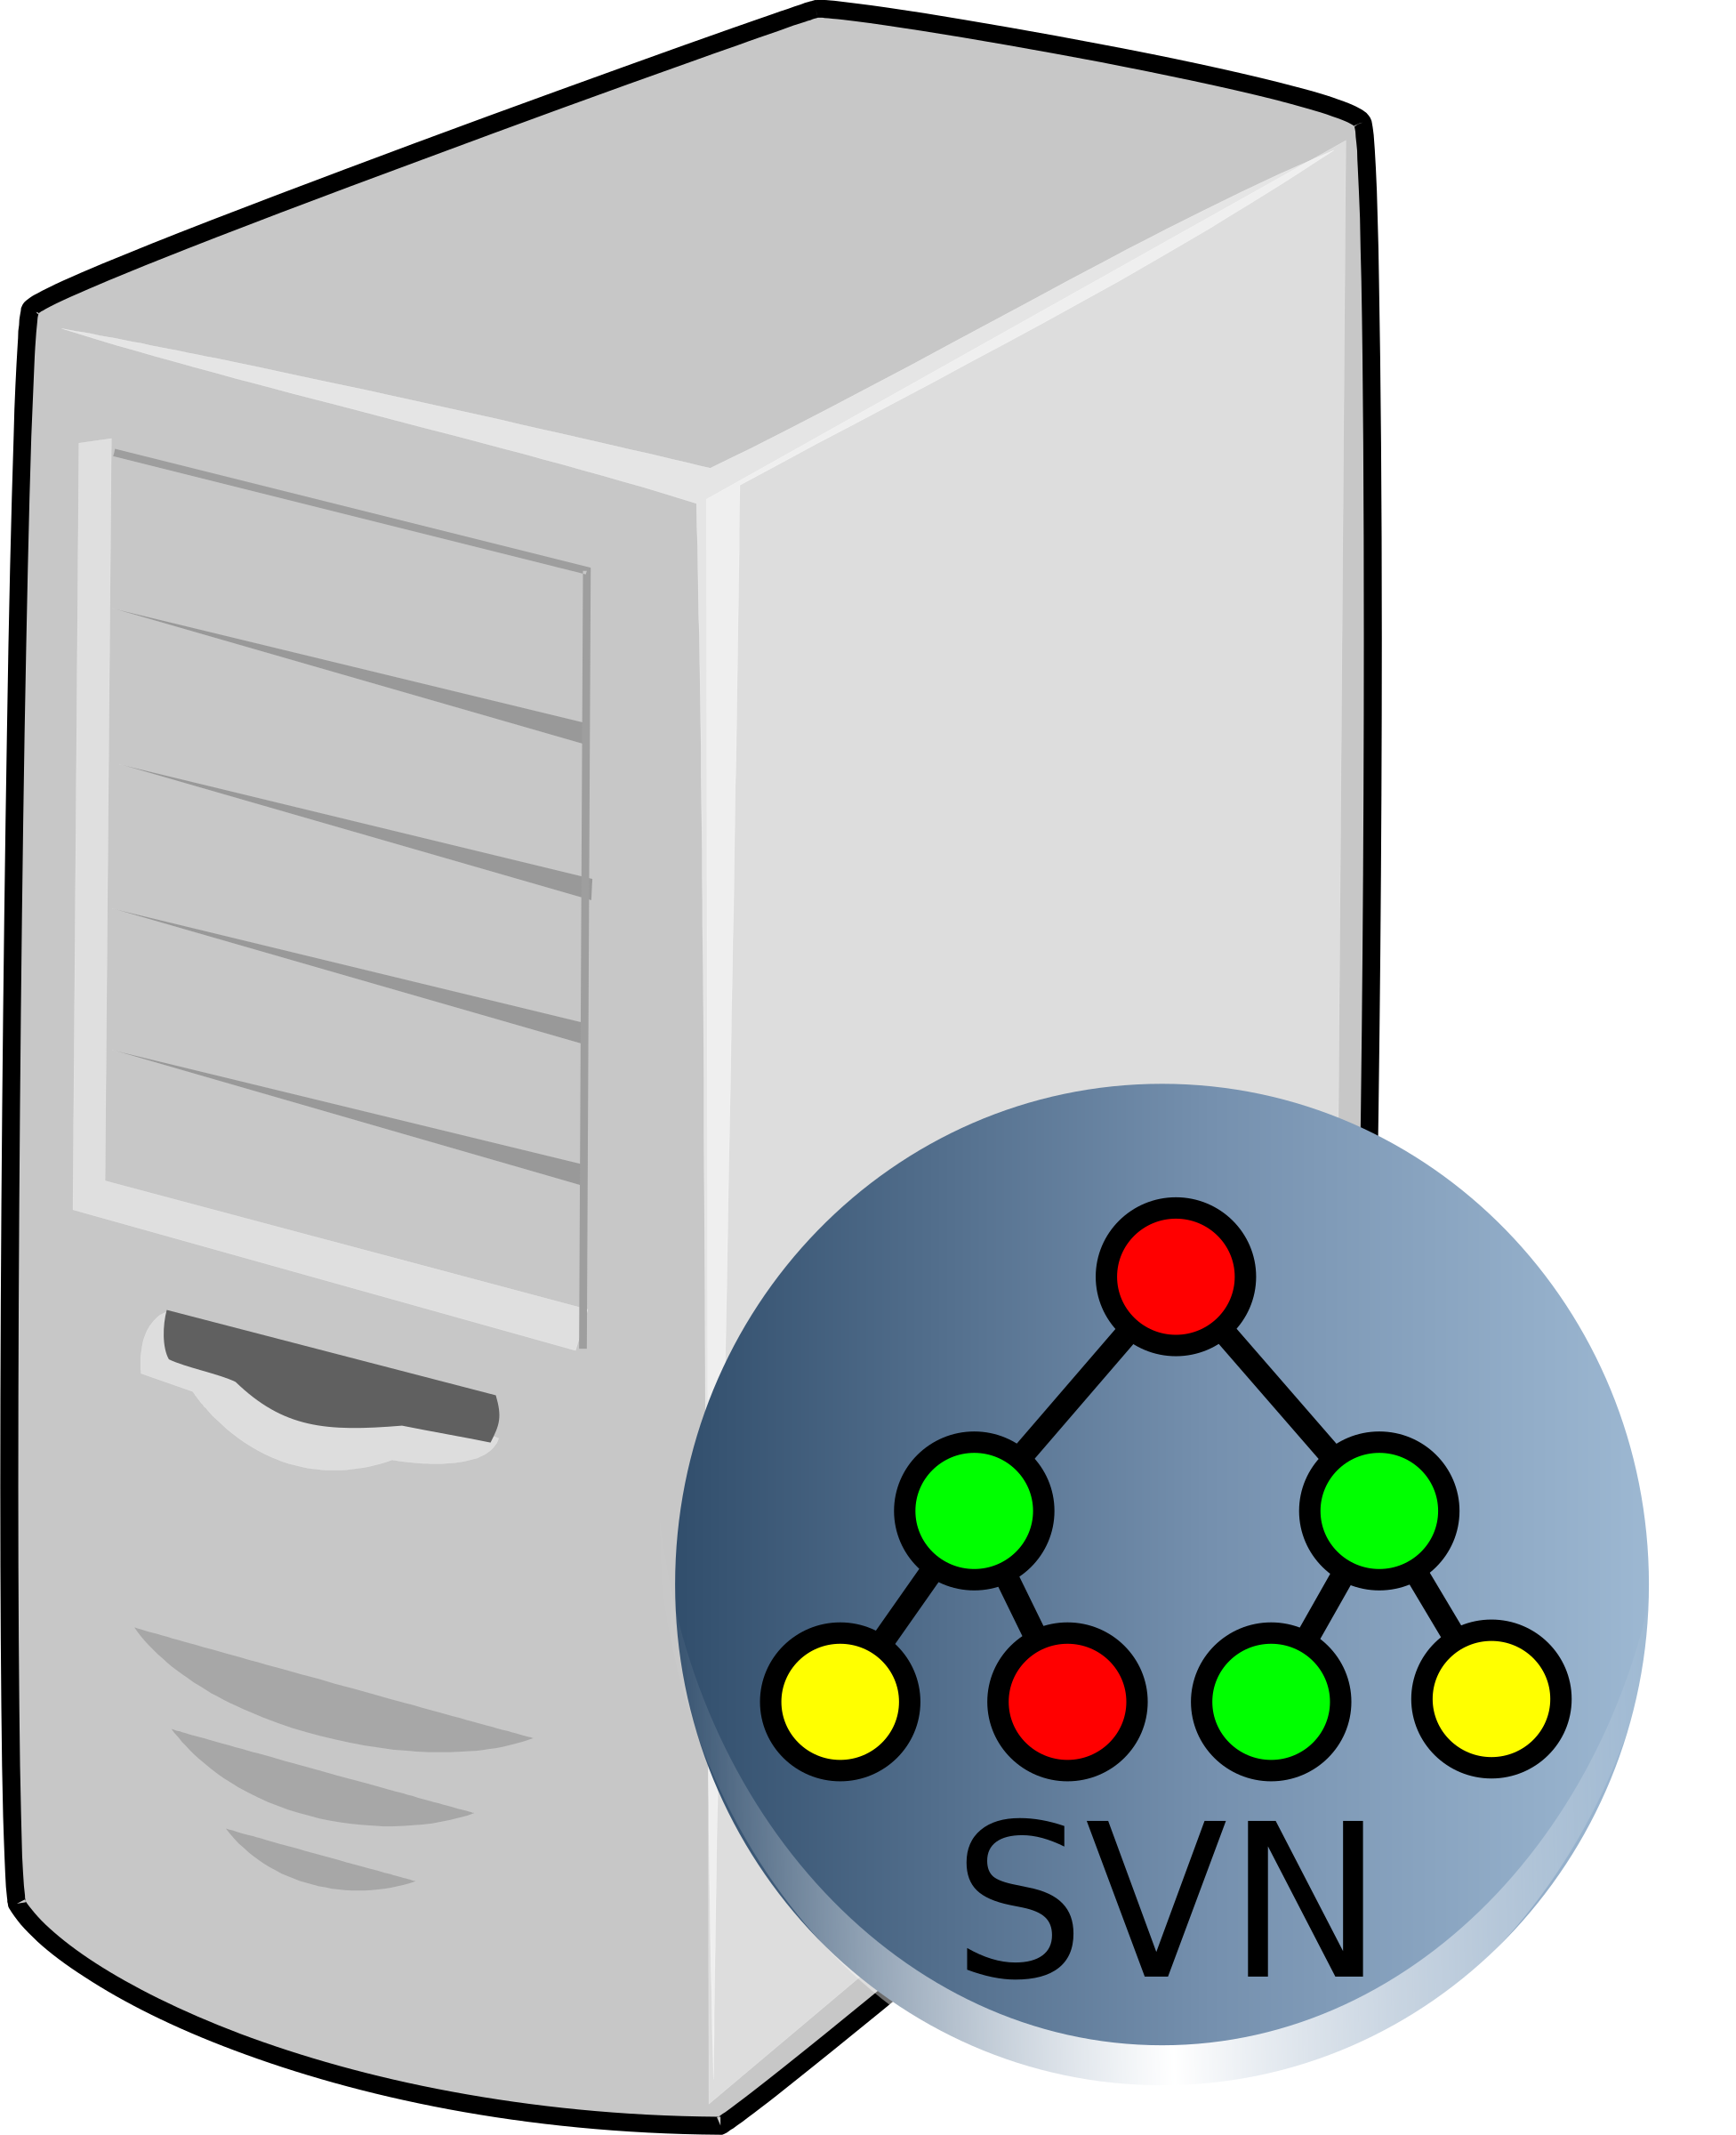 SVN server by elconomeno@email.com